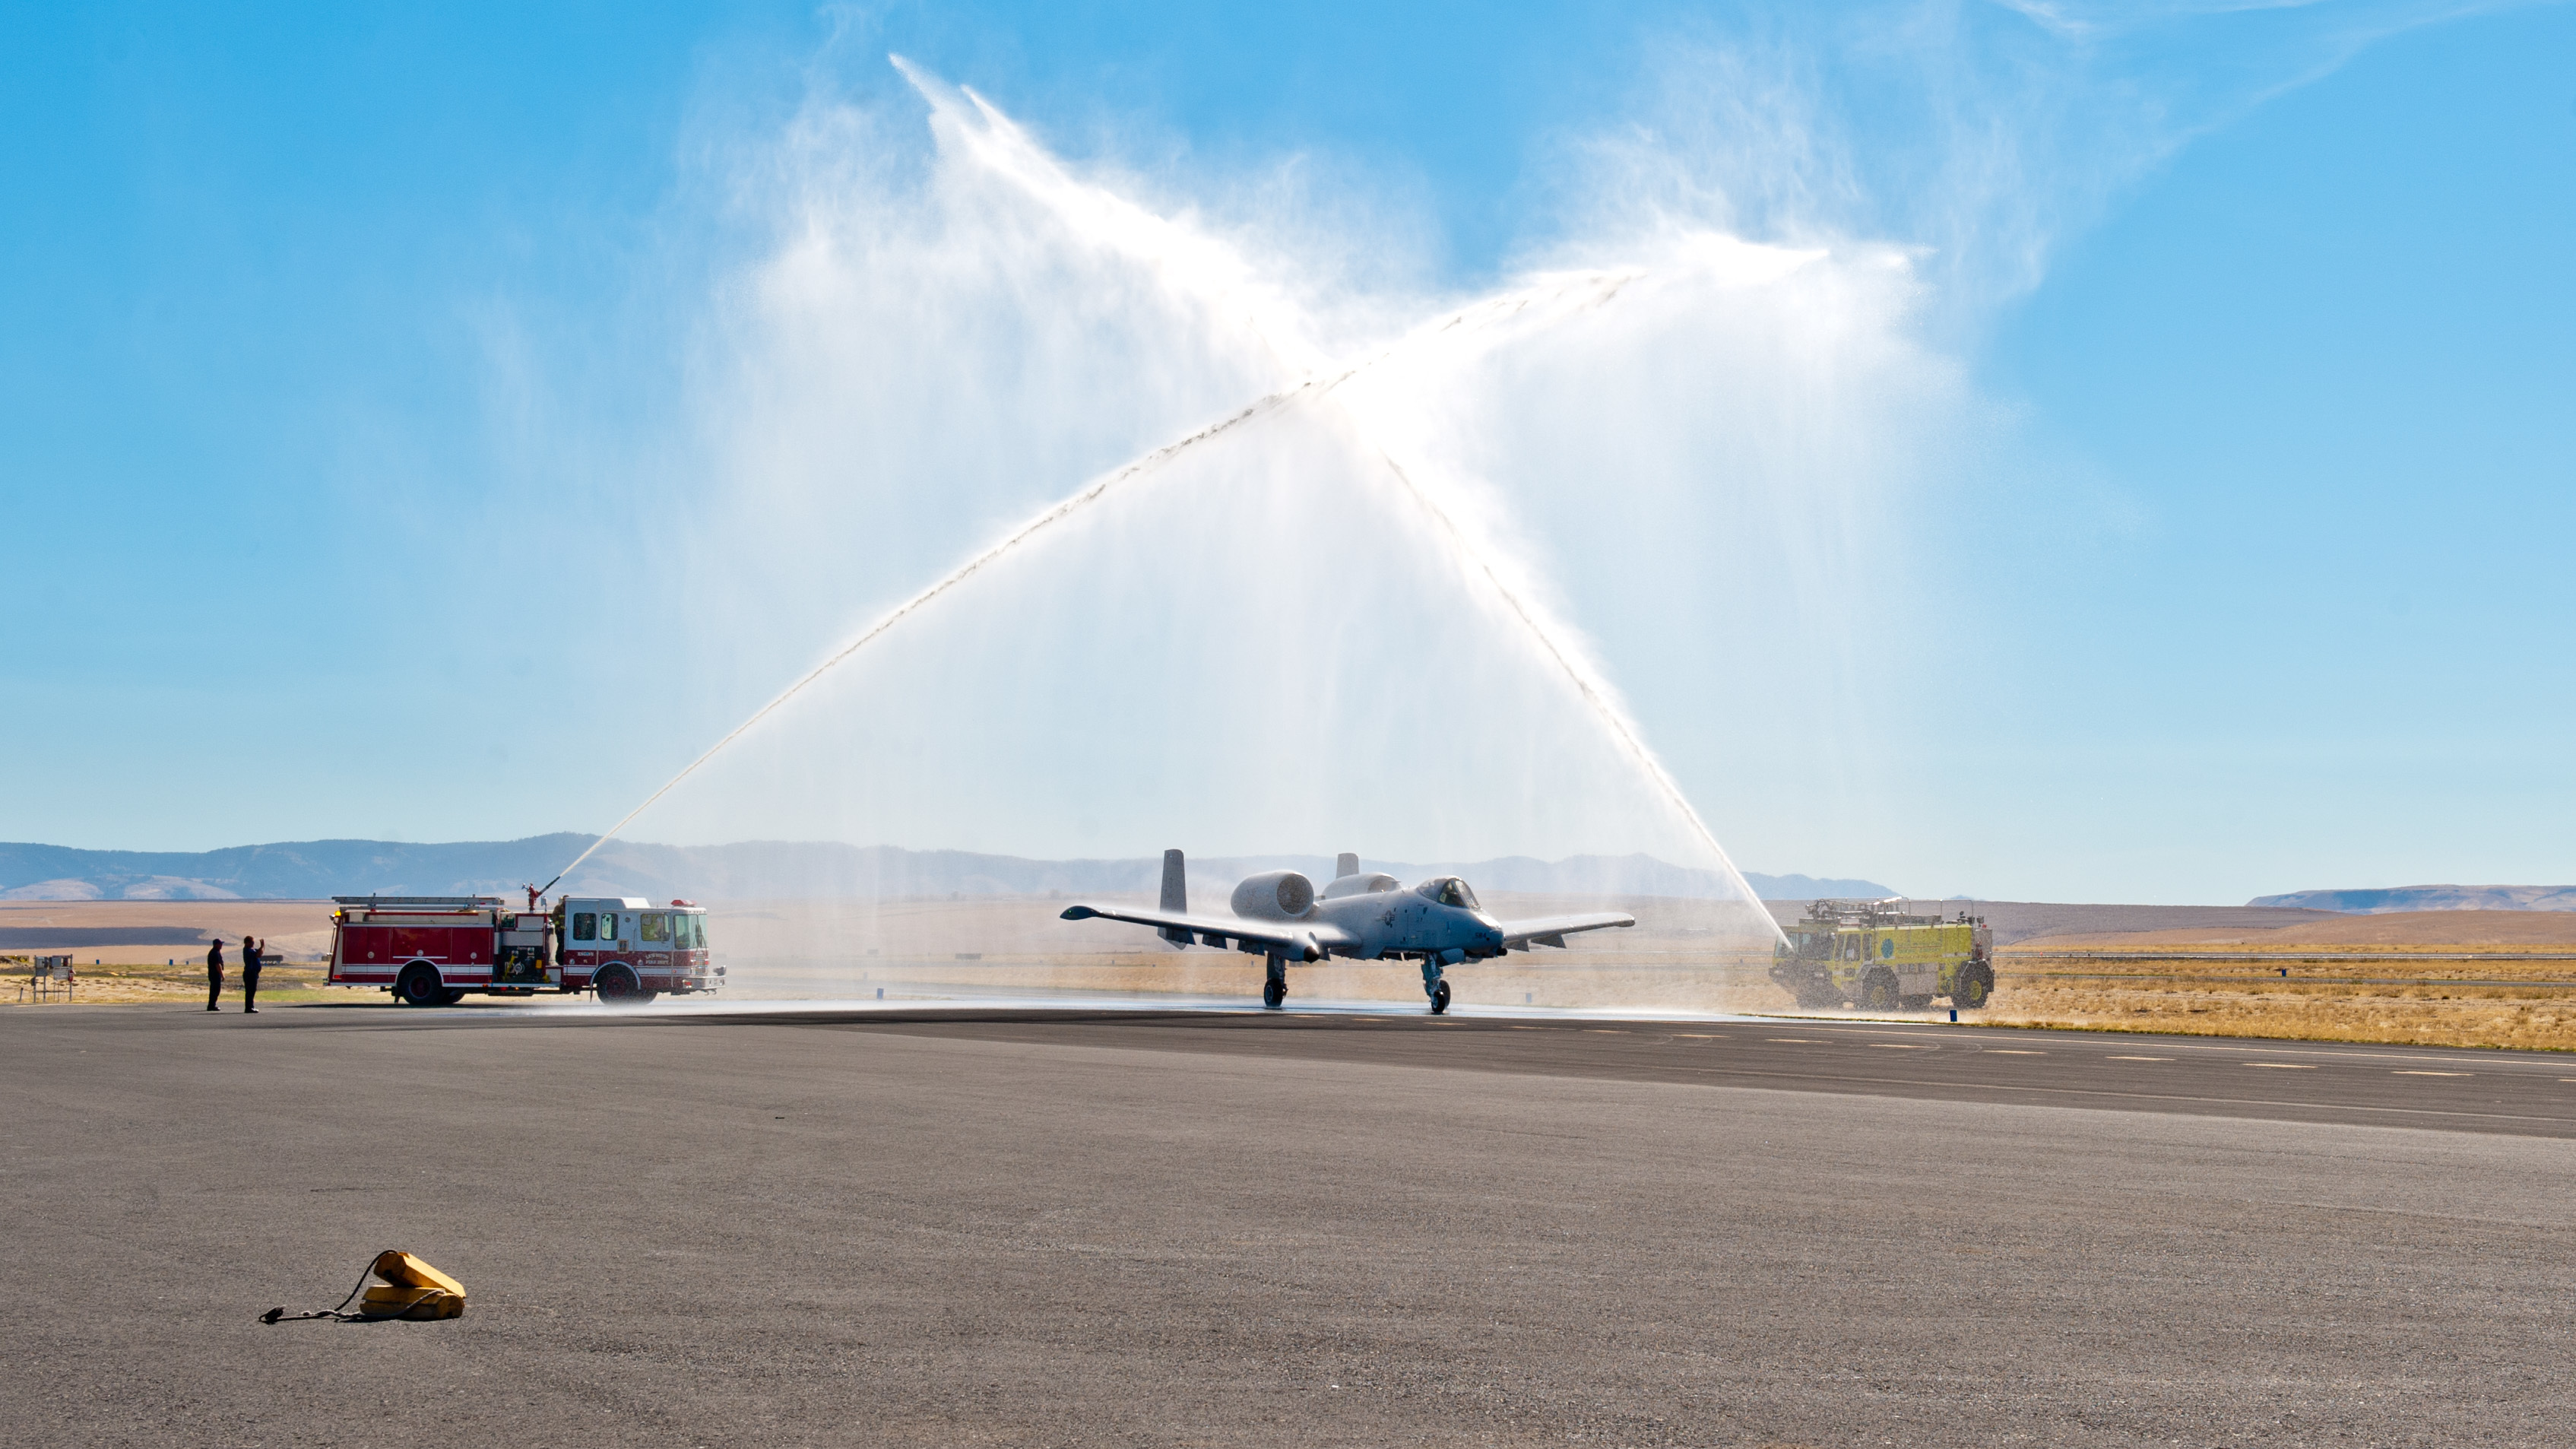 The Airmen of the Idaho Air National Guard's 124th Fighter Wing held a ceremony dedicating an A-10C Thunderbolt II aircraft to the city of Lewiston at the Lewiston-Nez Perce Regional Airport on Sept. 23, 2015. City officials from the community attended the ceremony along with interested members of the public. (Air National Guard photo by Tech. Sgt. John Winn)